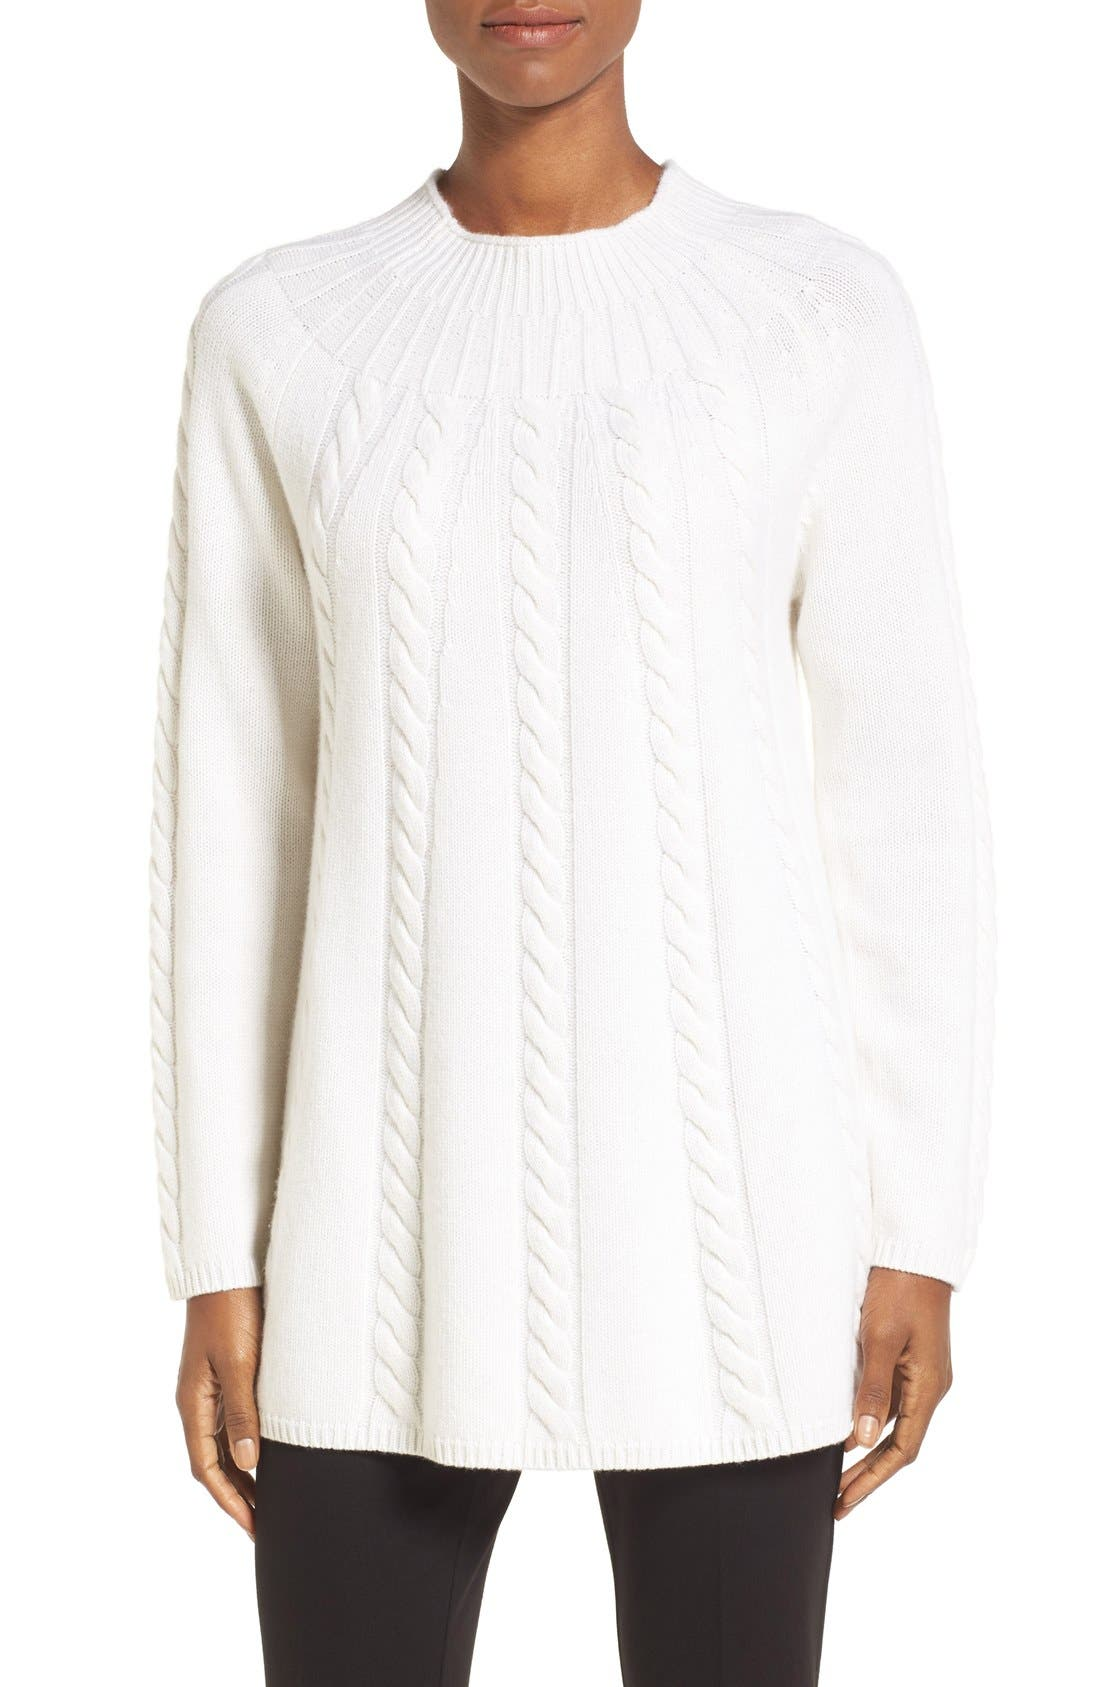 Alternate Image 1 Selected - Nordstrom Collection Cashmere Cable Knit A-Line Pullover